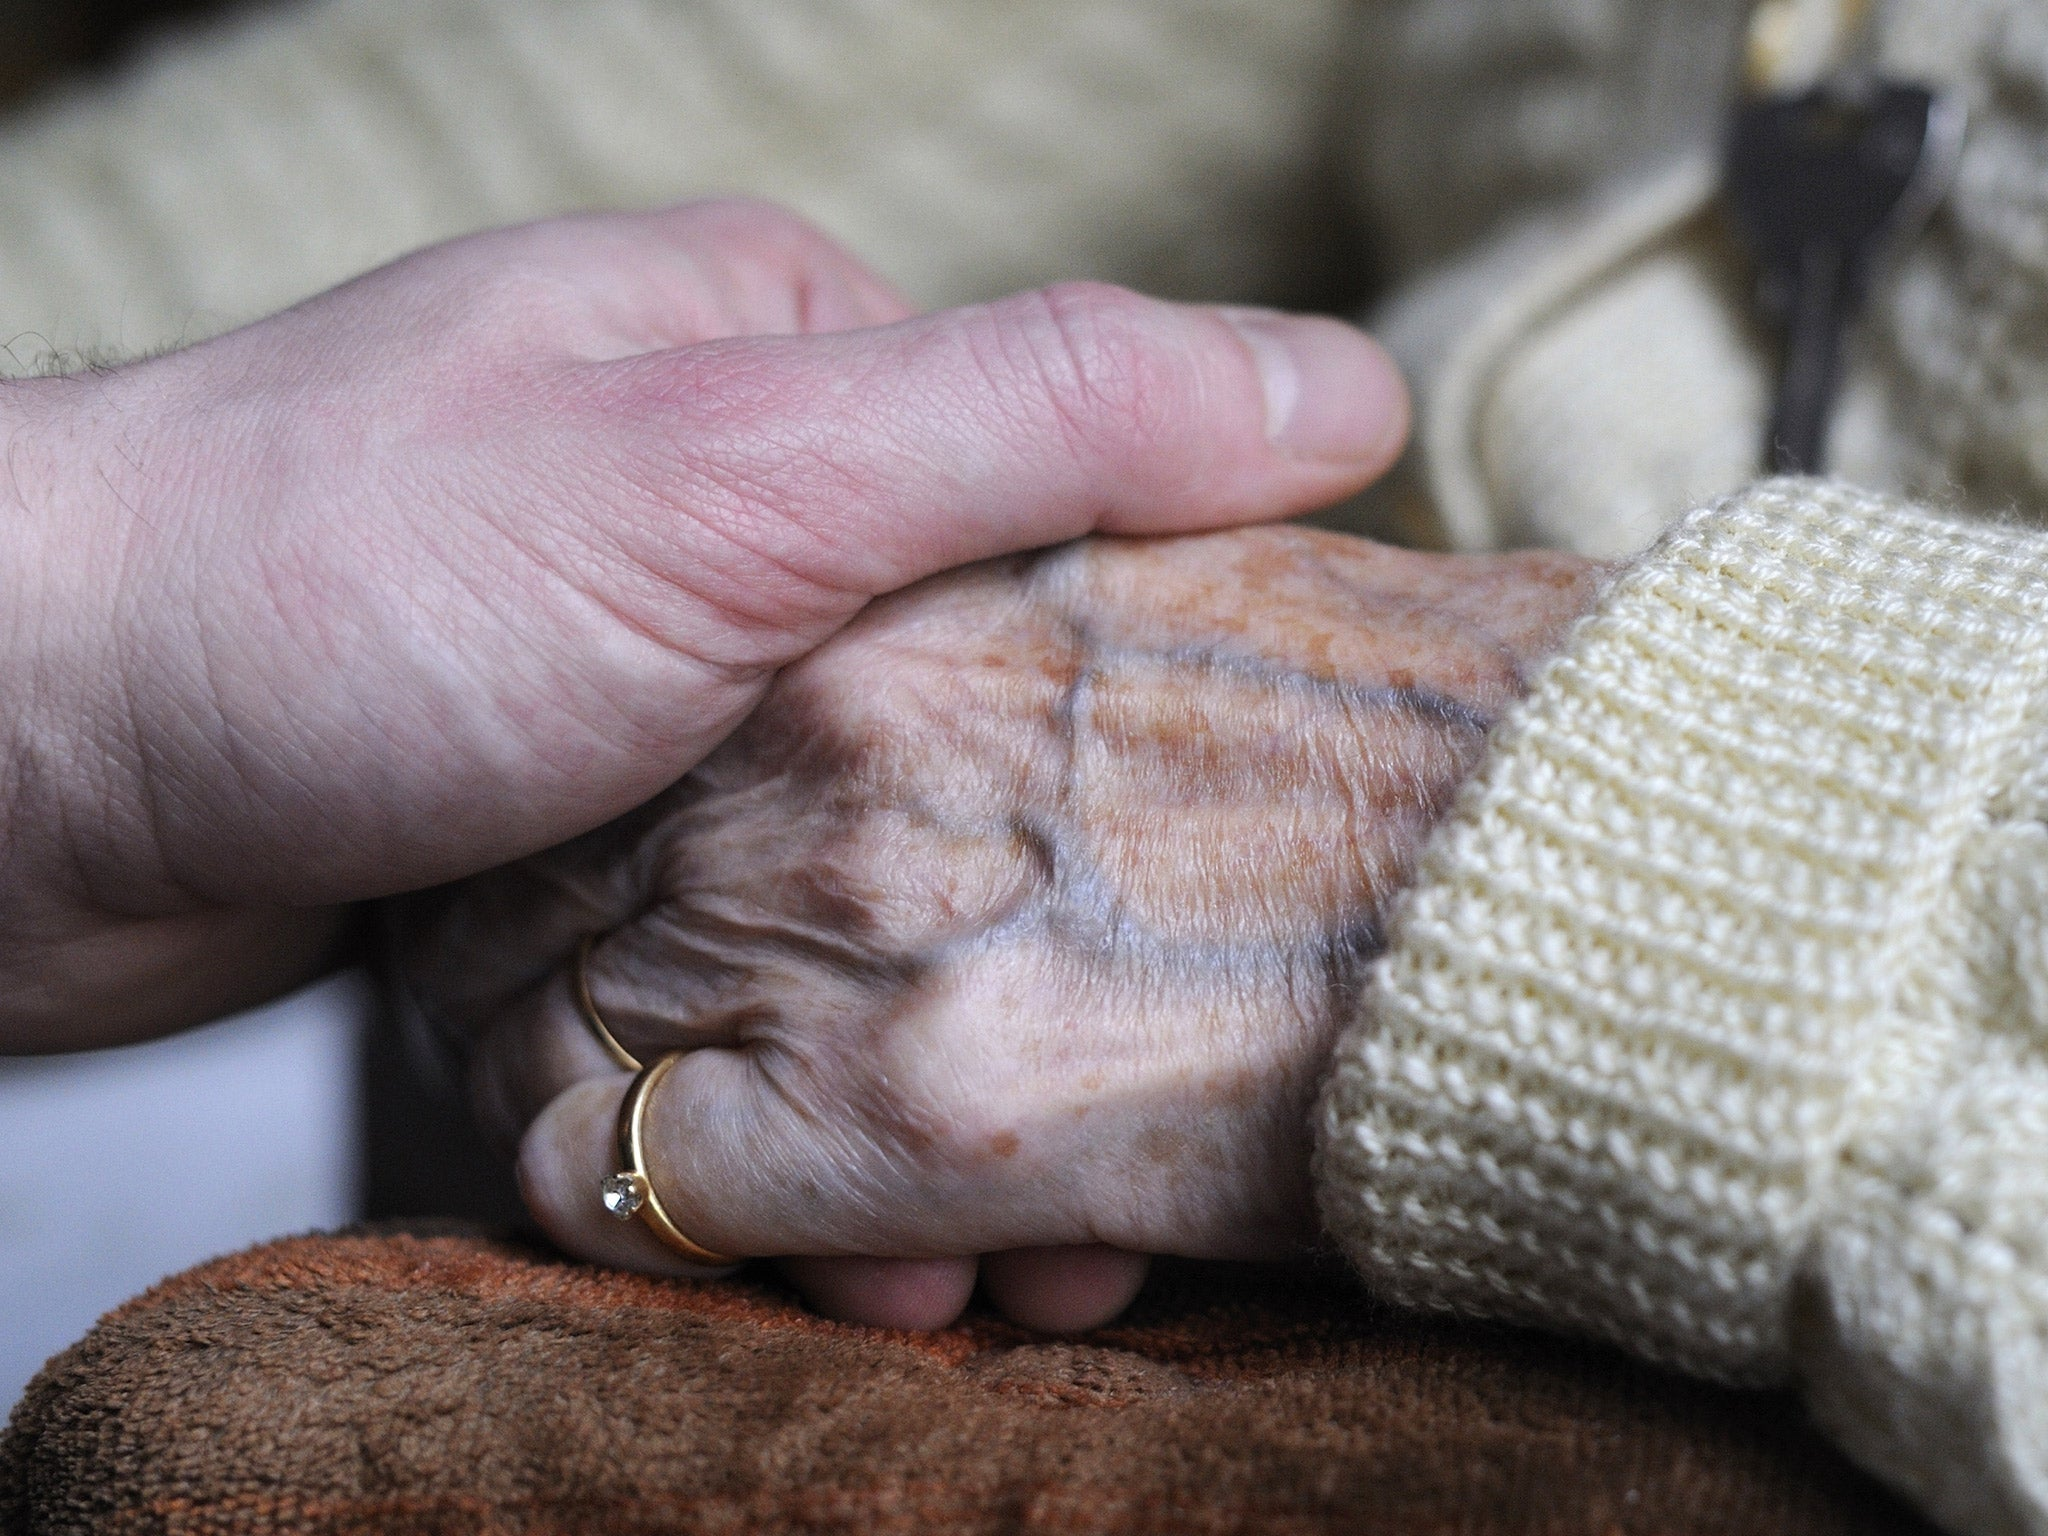 Elderly care in England is 'unacceptable in a civilised society